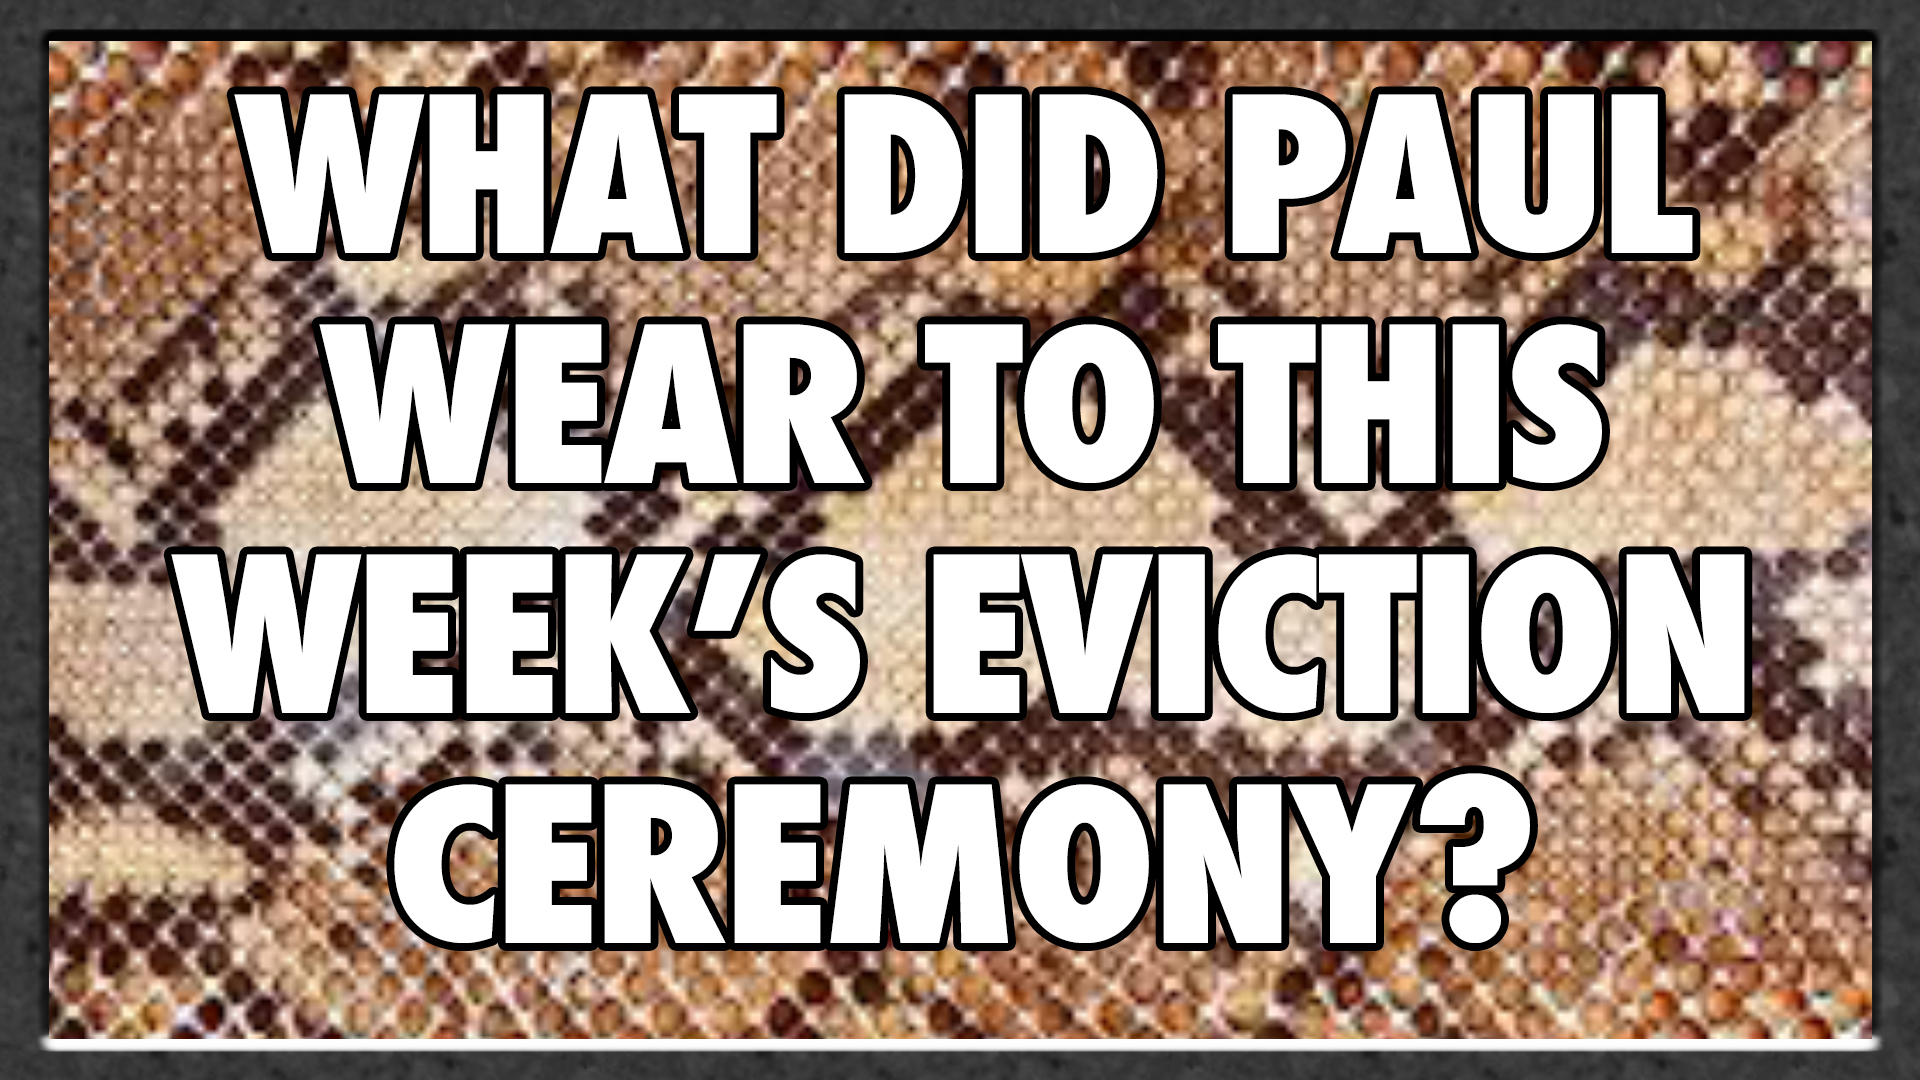 What did Paul wear to this week's eviction ceremony?